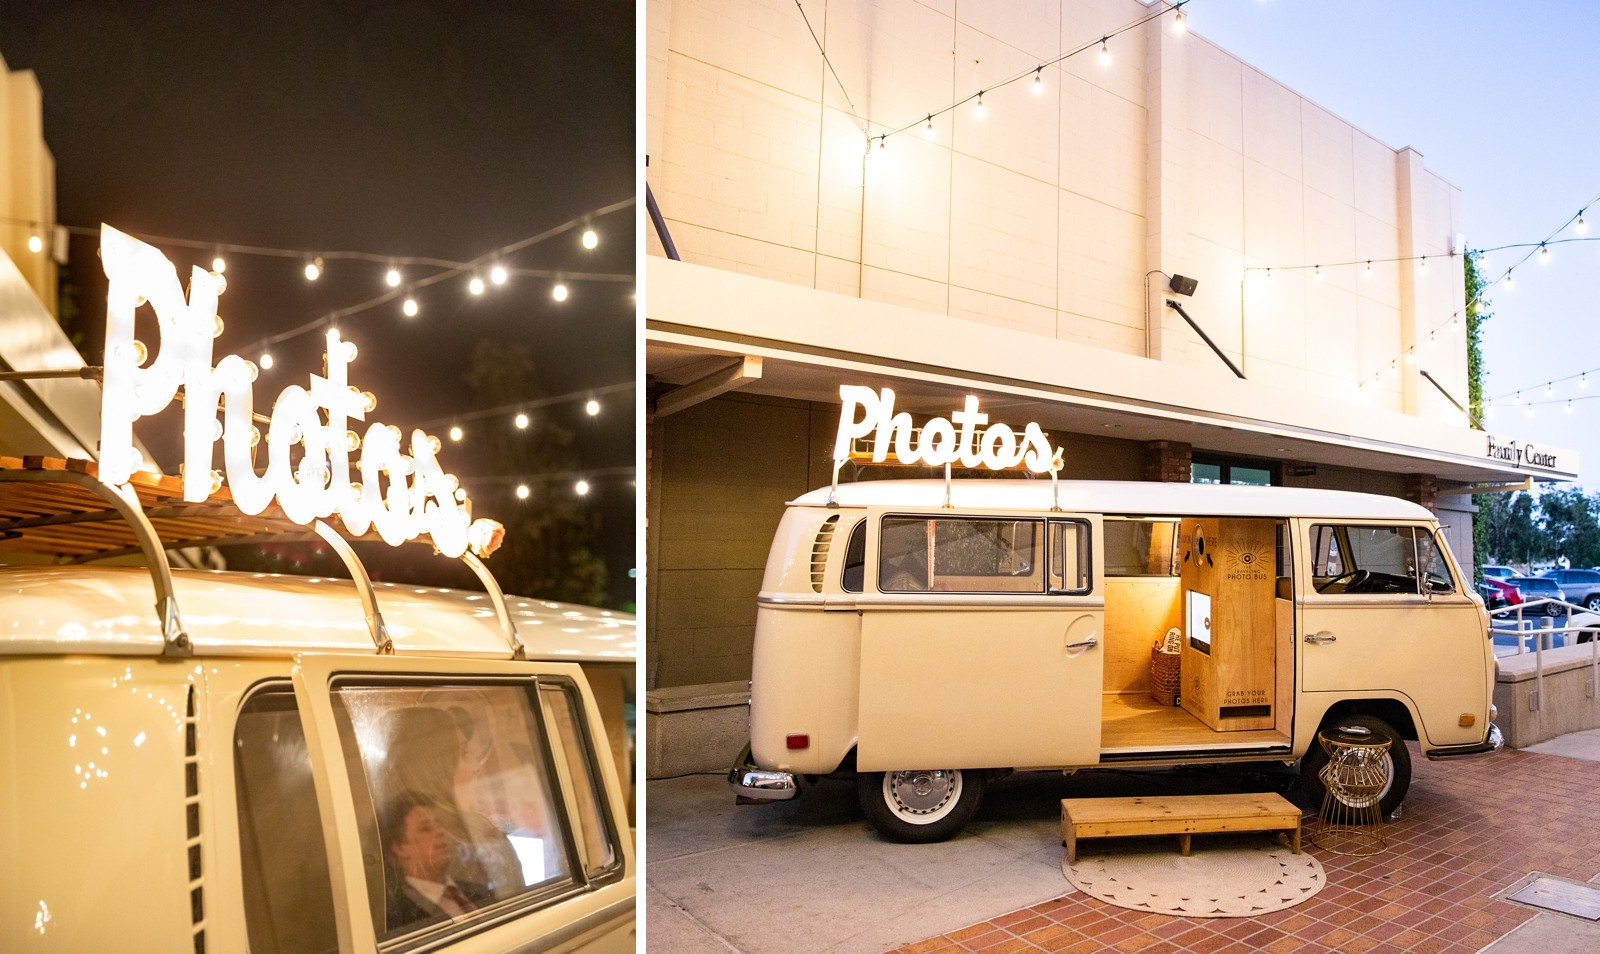 VW Bus Photobooth